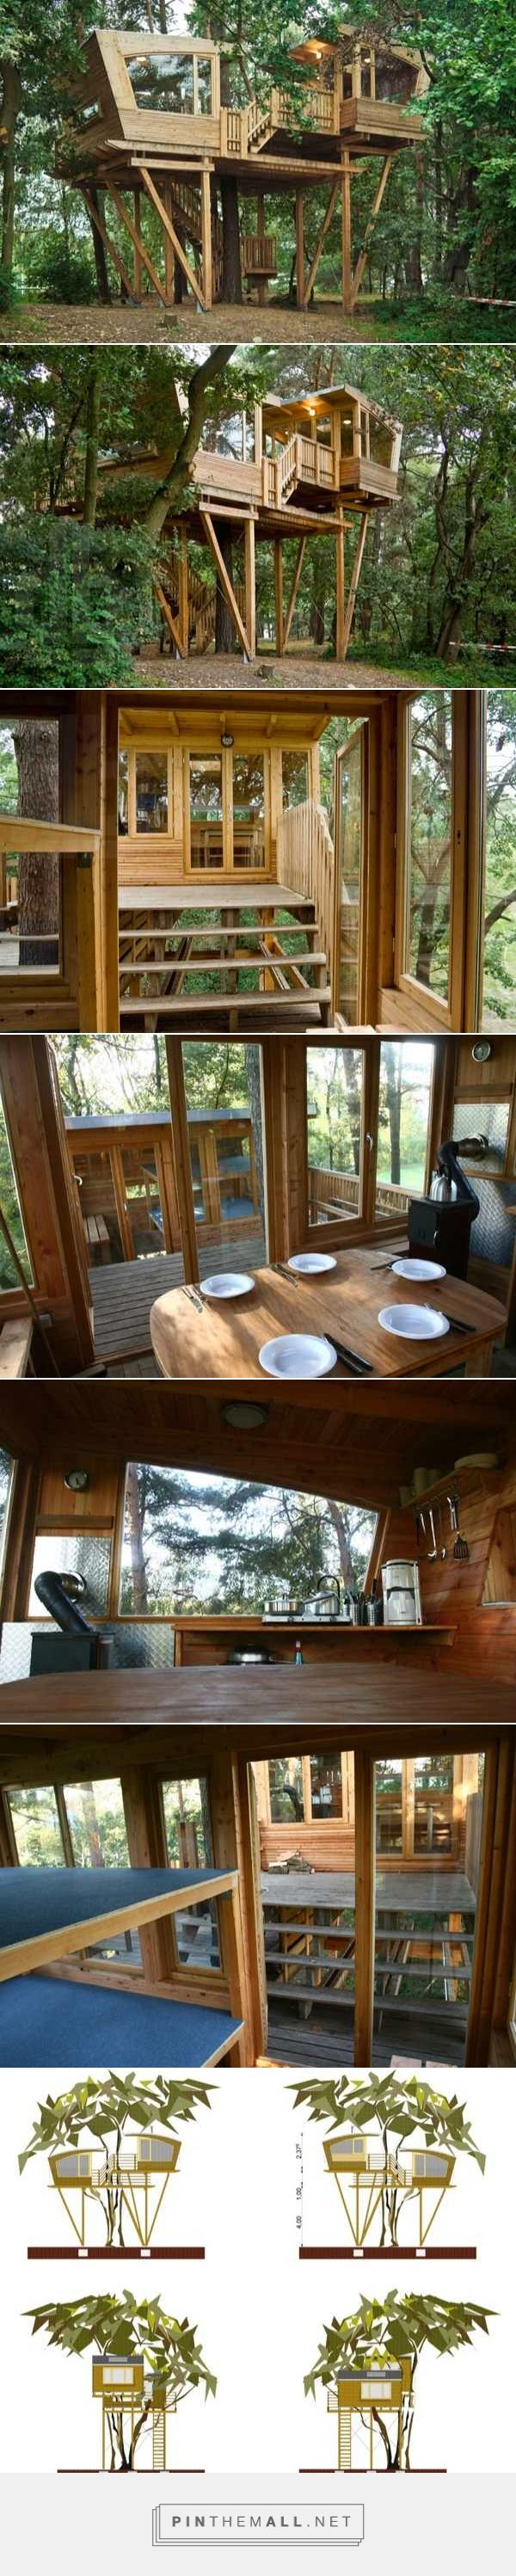 210 Sq. Ft. Modern Treehouse Tiny Home - created via https://pinthemall.net